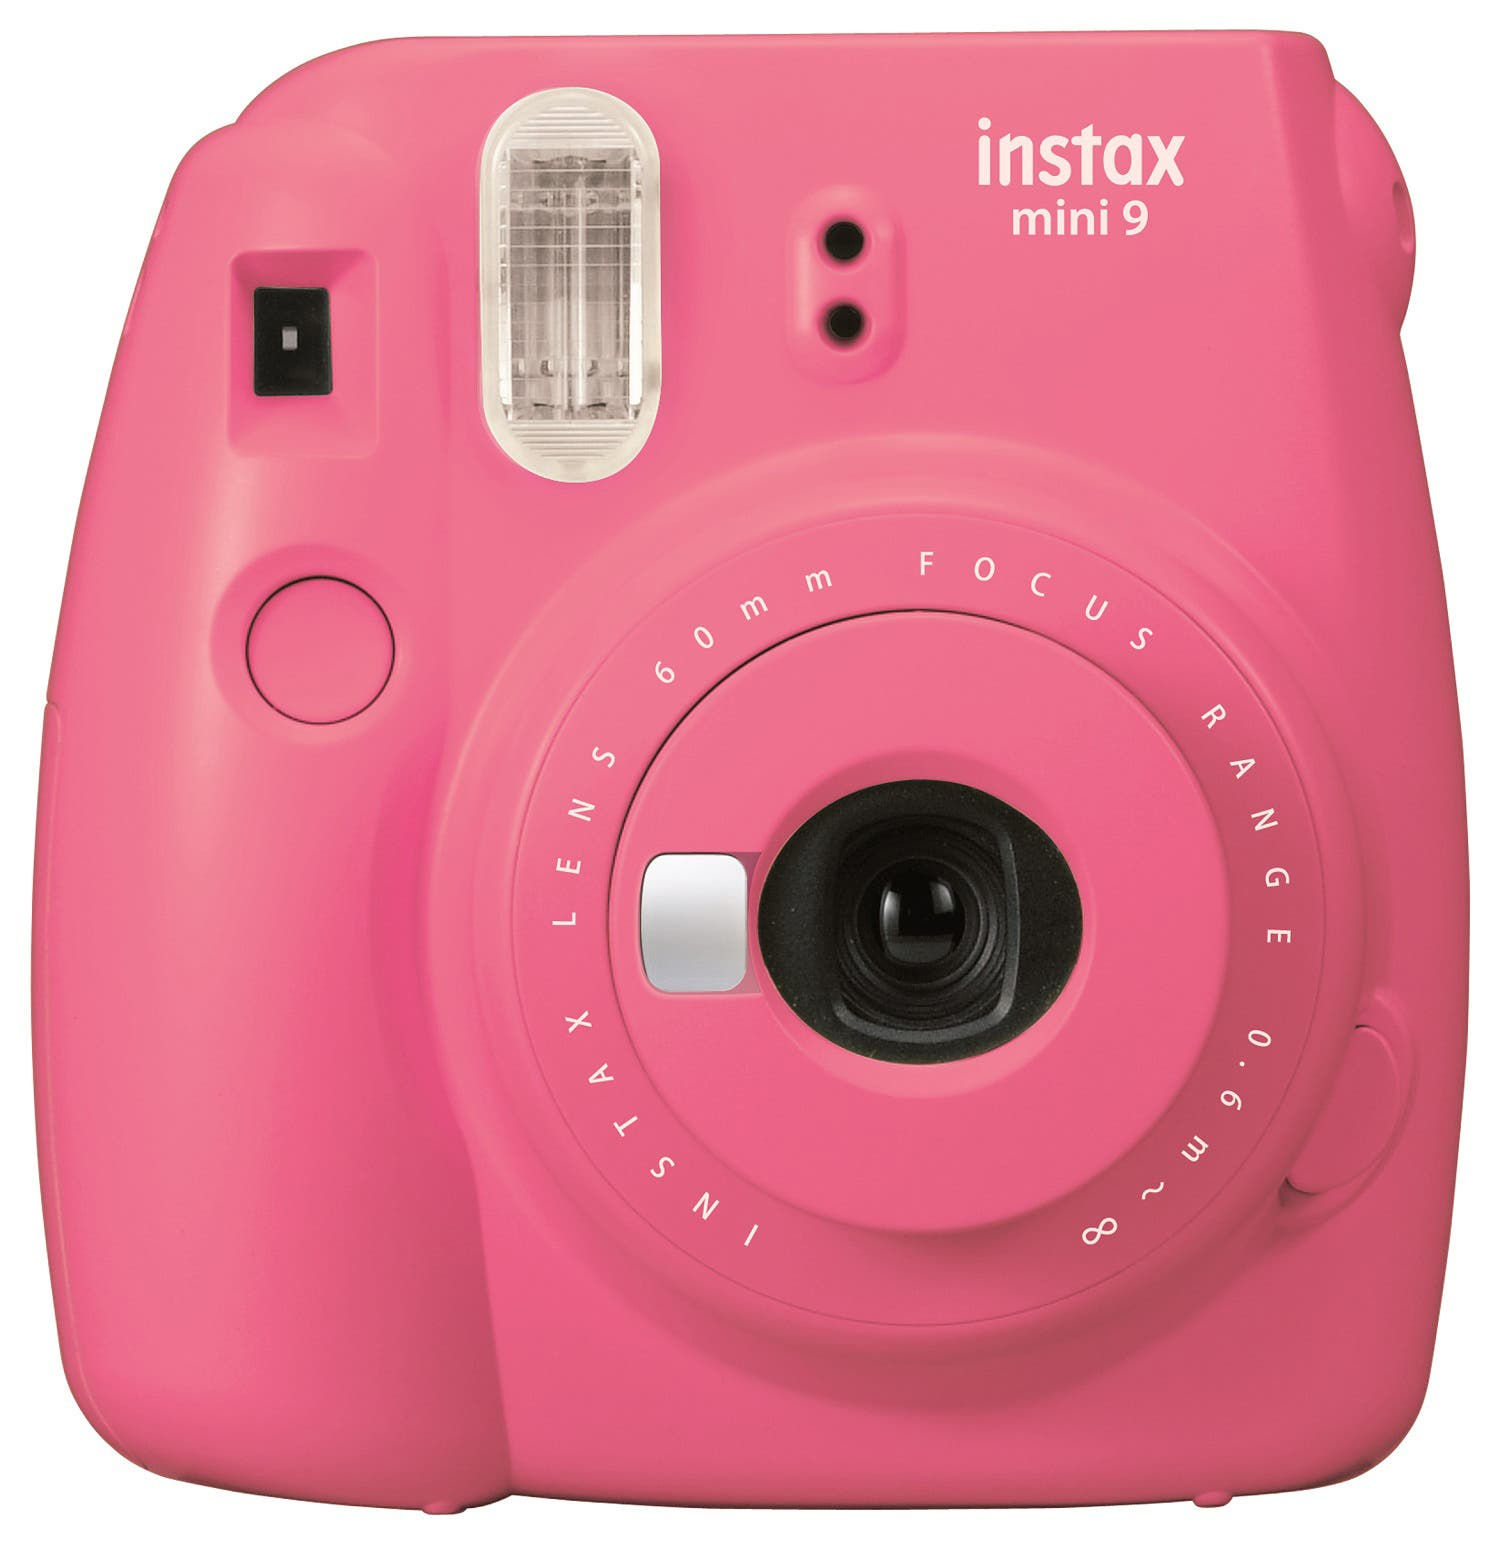 The Fujifilm Instax Mini 9 Highlights The Selfie Mirror and High Key Lighting Mode